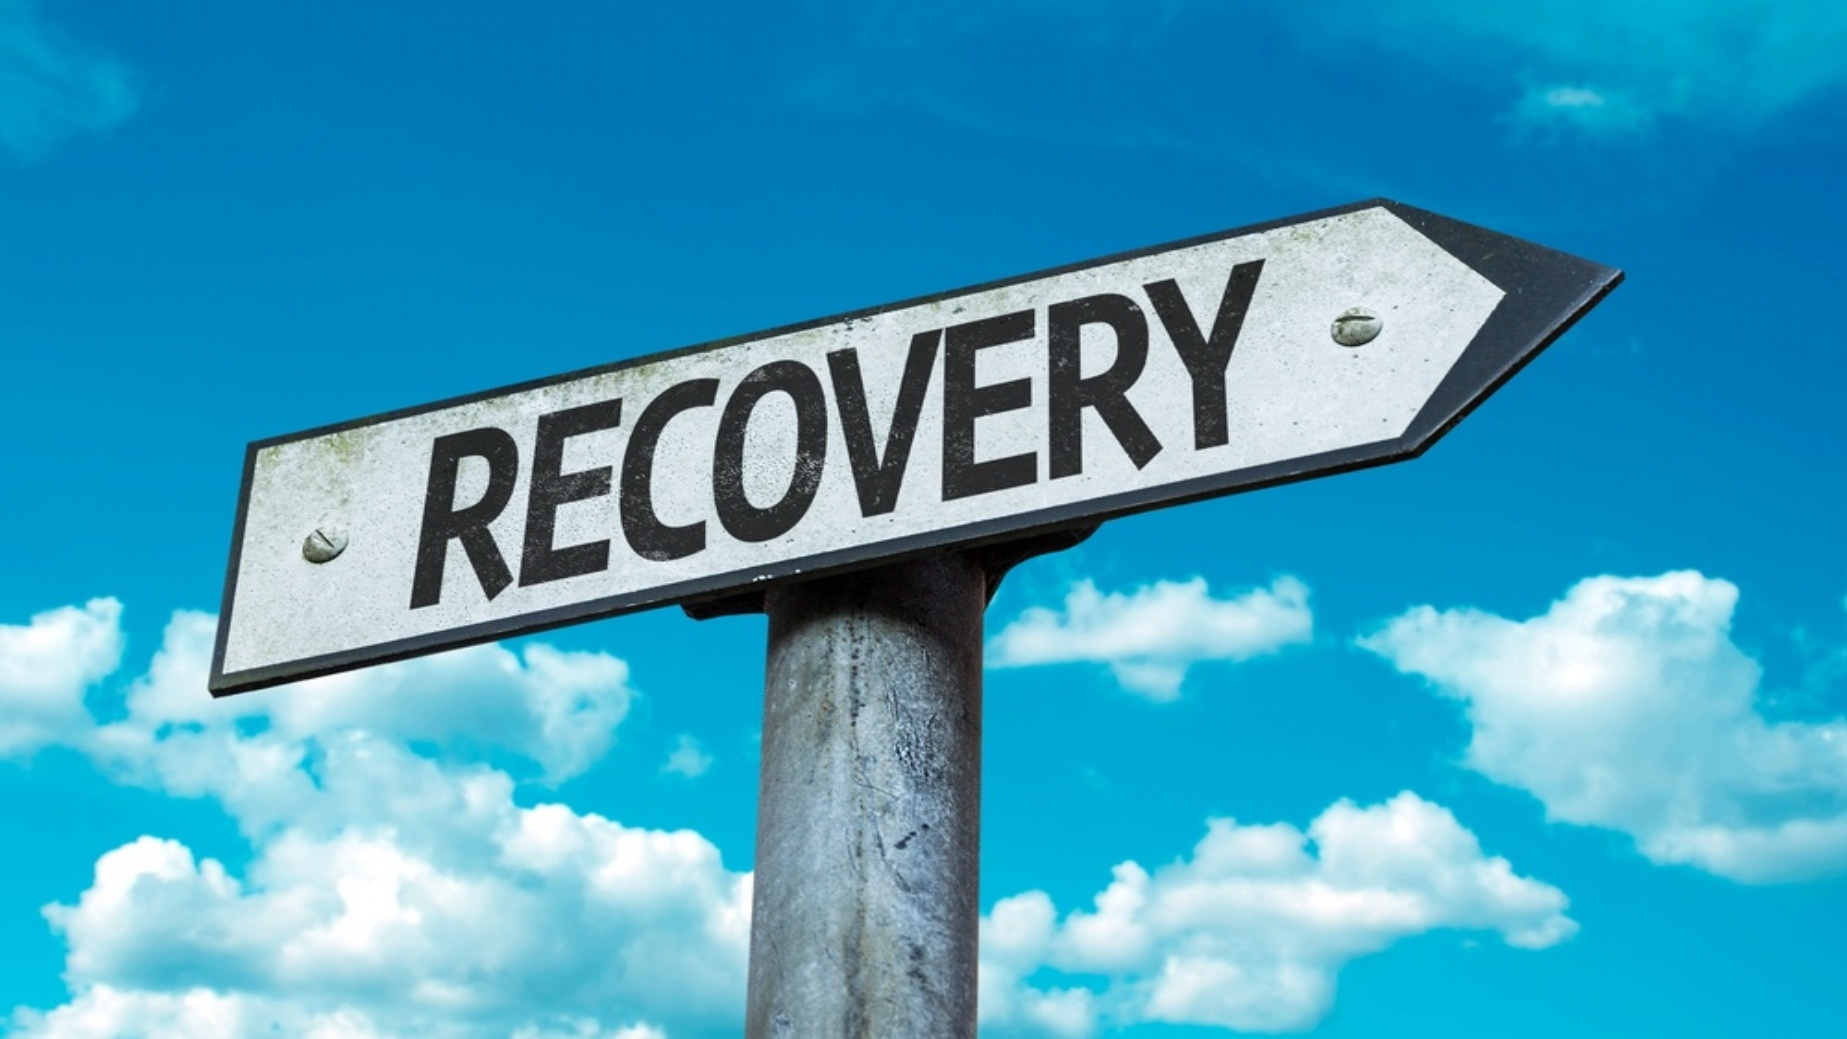 Recovery sign with sky background-070339-edited.jpeg